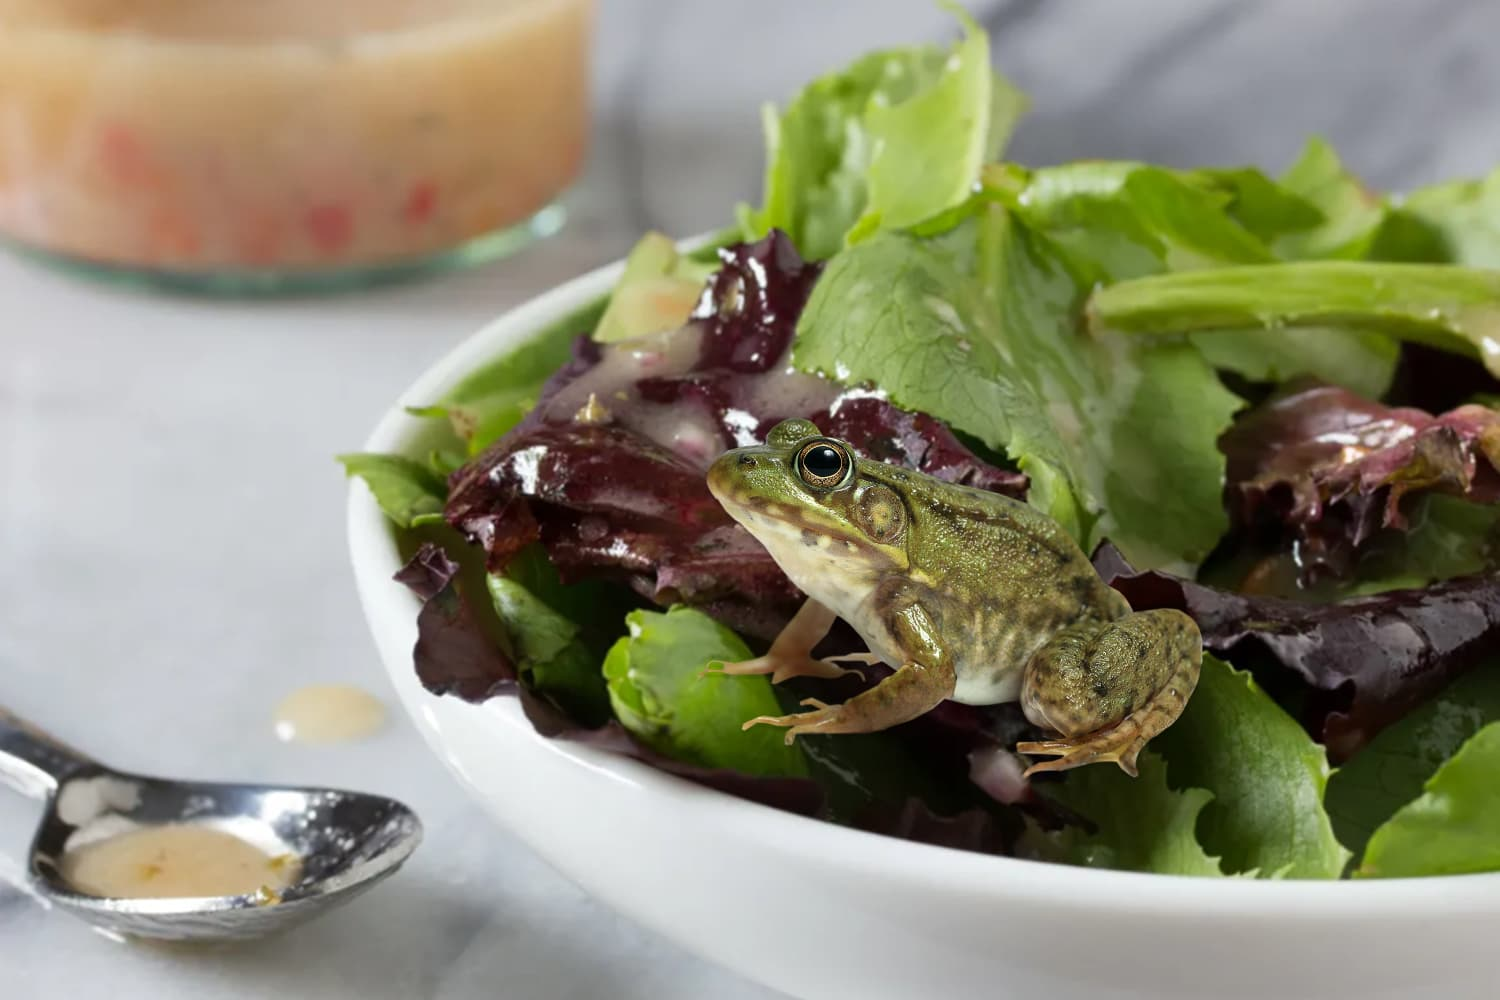 A Live Frog Was Found in These Triple-Washed Organic Salad Greens and Nothing Is Sacred Anymore